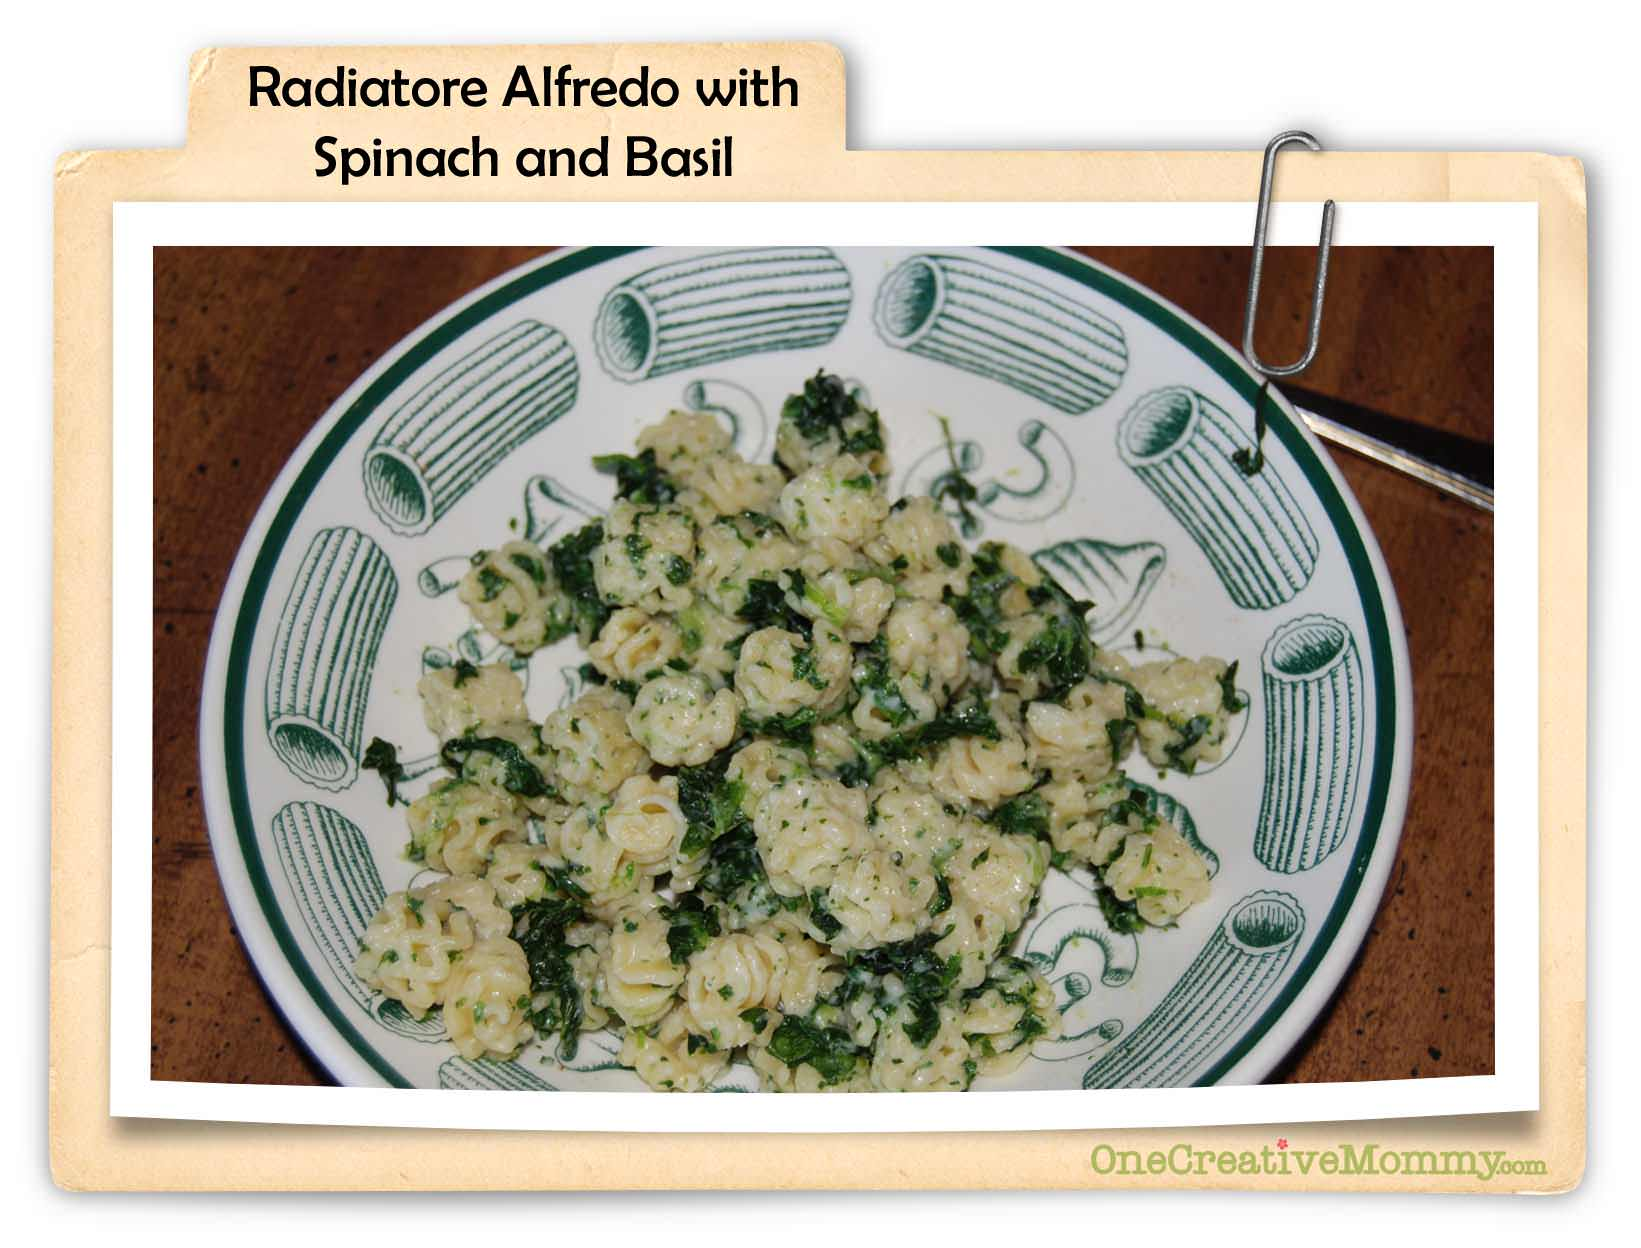 Radiatore alfredo with spinach and basil for Radiatore arredo